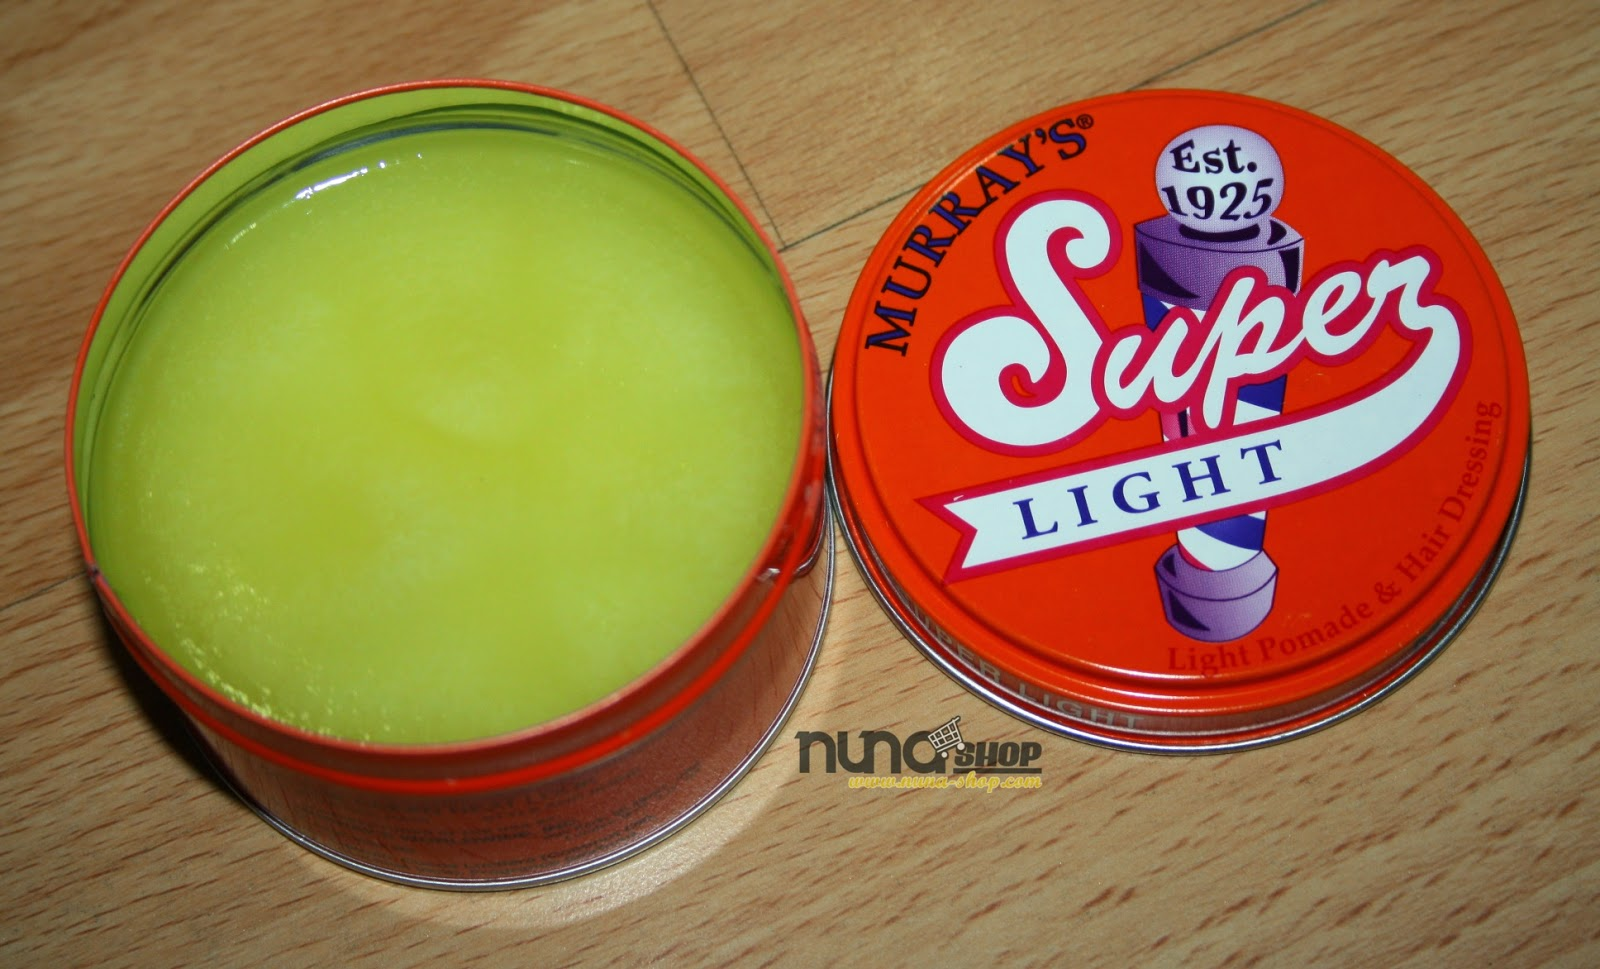 Pomade Murrays Super Light Toar Ampamp Roby And Tnr Heavy Duty Free Sisir Original